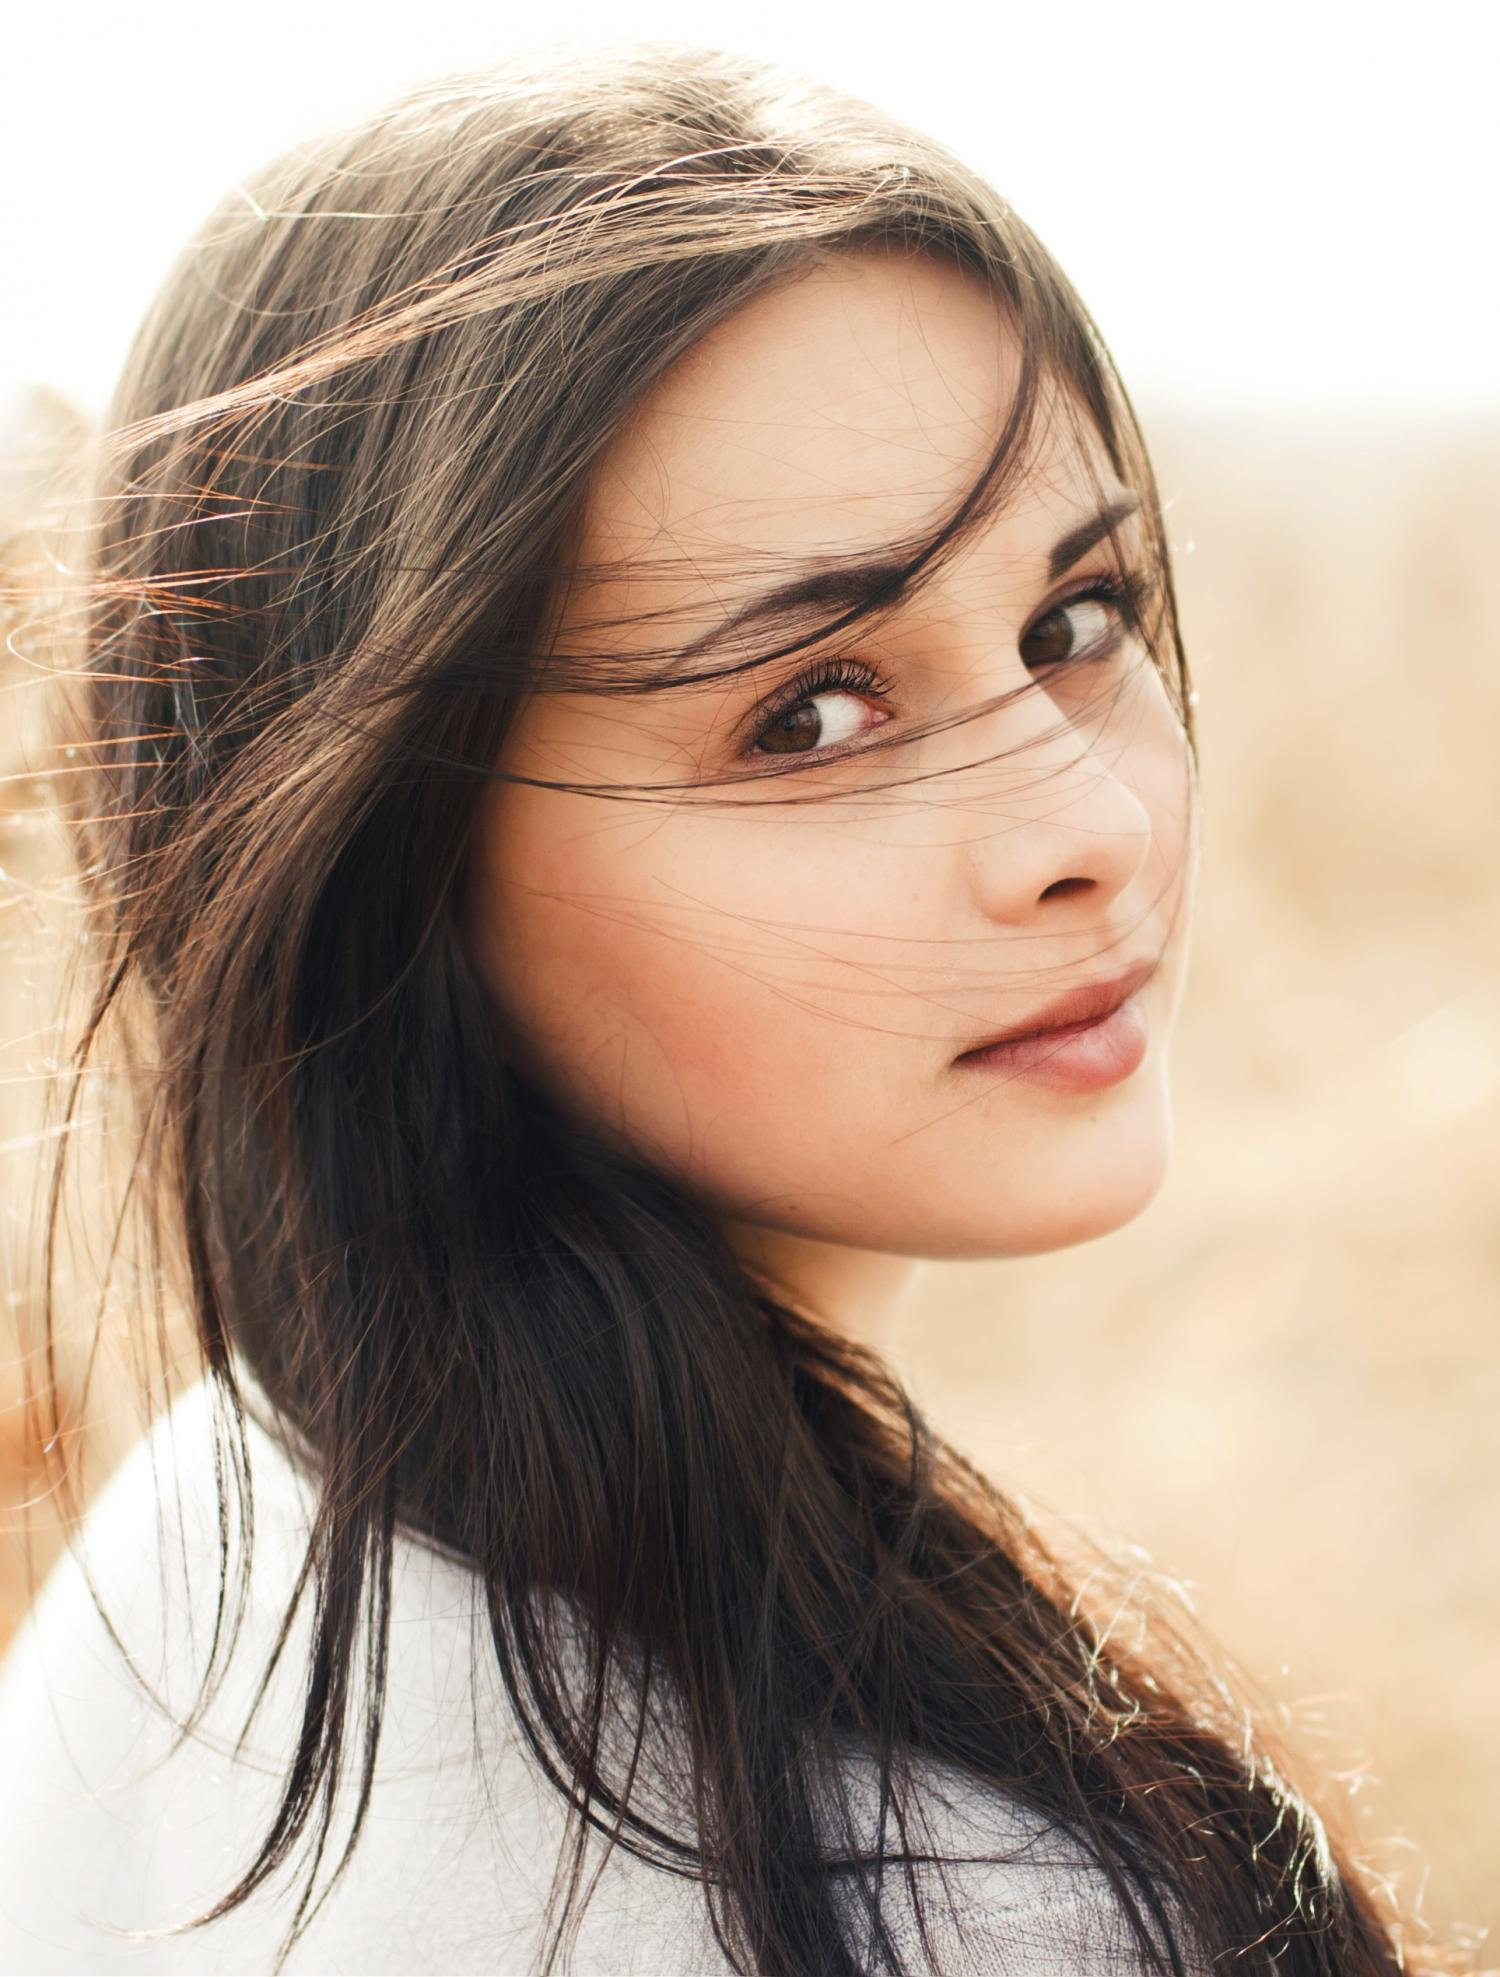 Natural Makeup Look For Beginners: How To Get Natural Looking Makeup